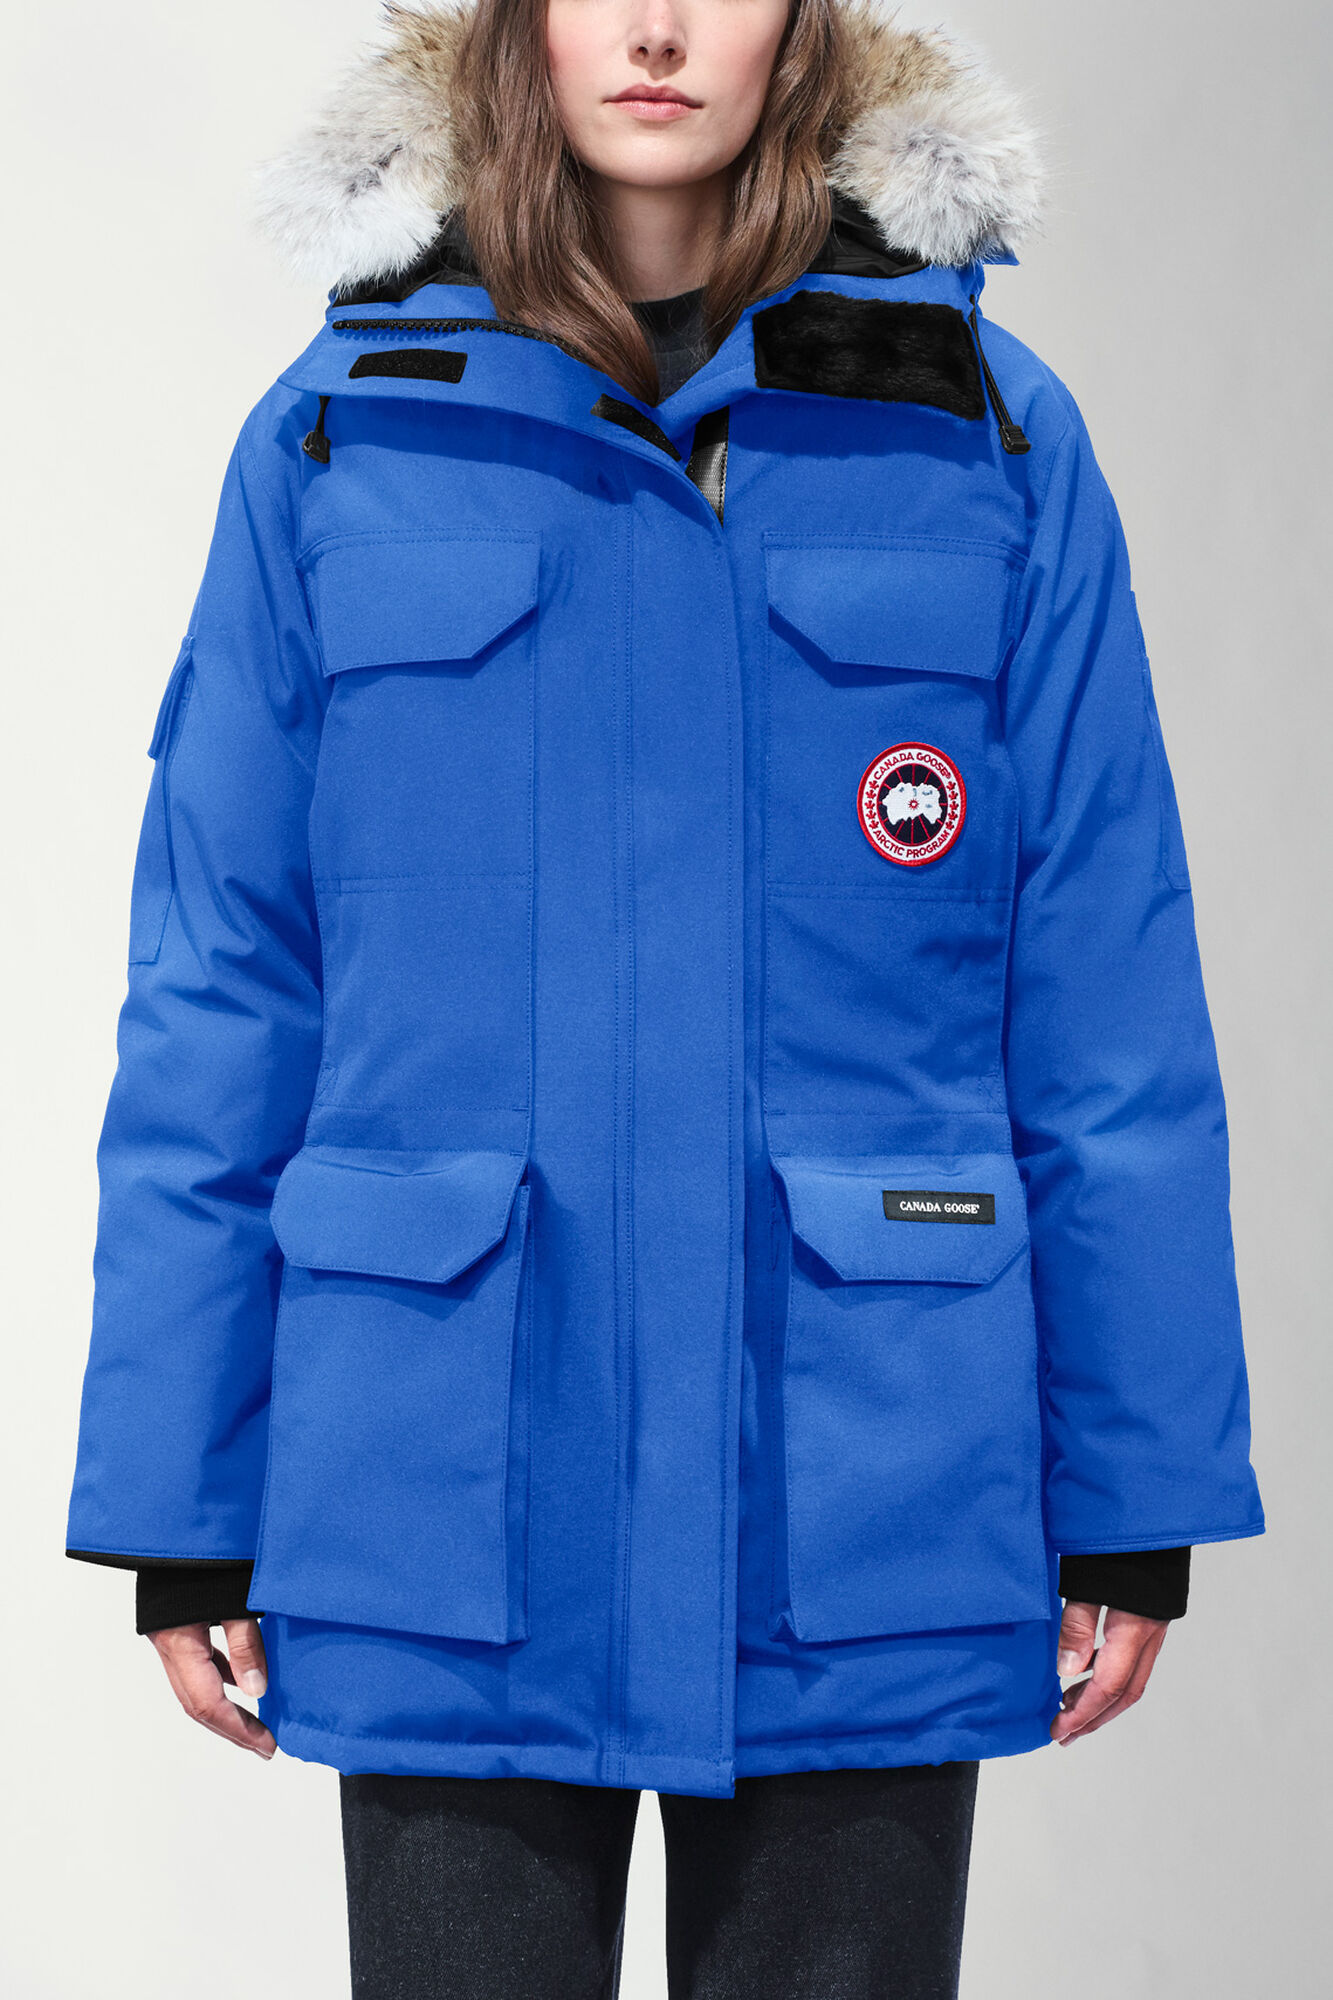 canada goose parka in vancouver canada goose kensington parka sale 2016. Black Bedroom Furniture Sets. Home Design Ideas